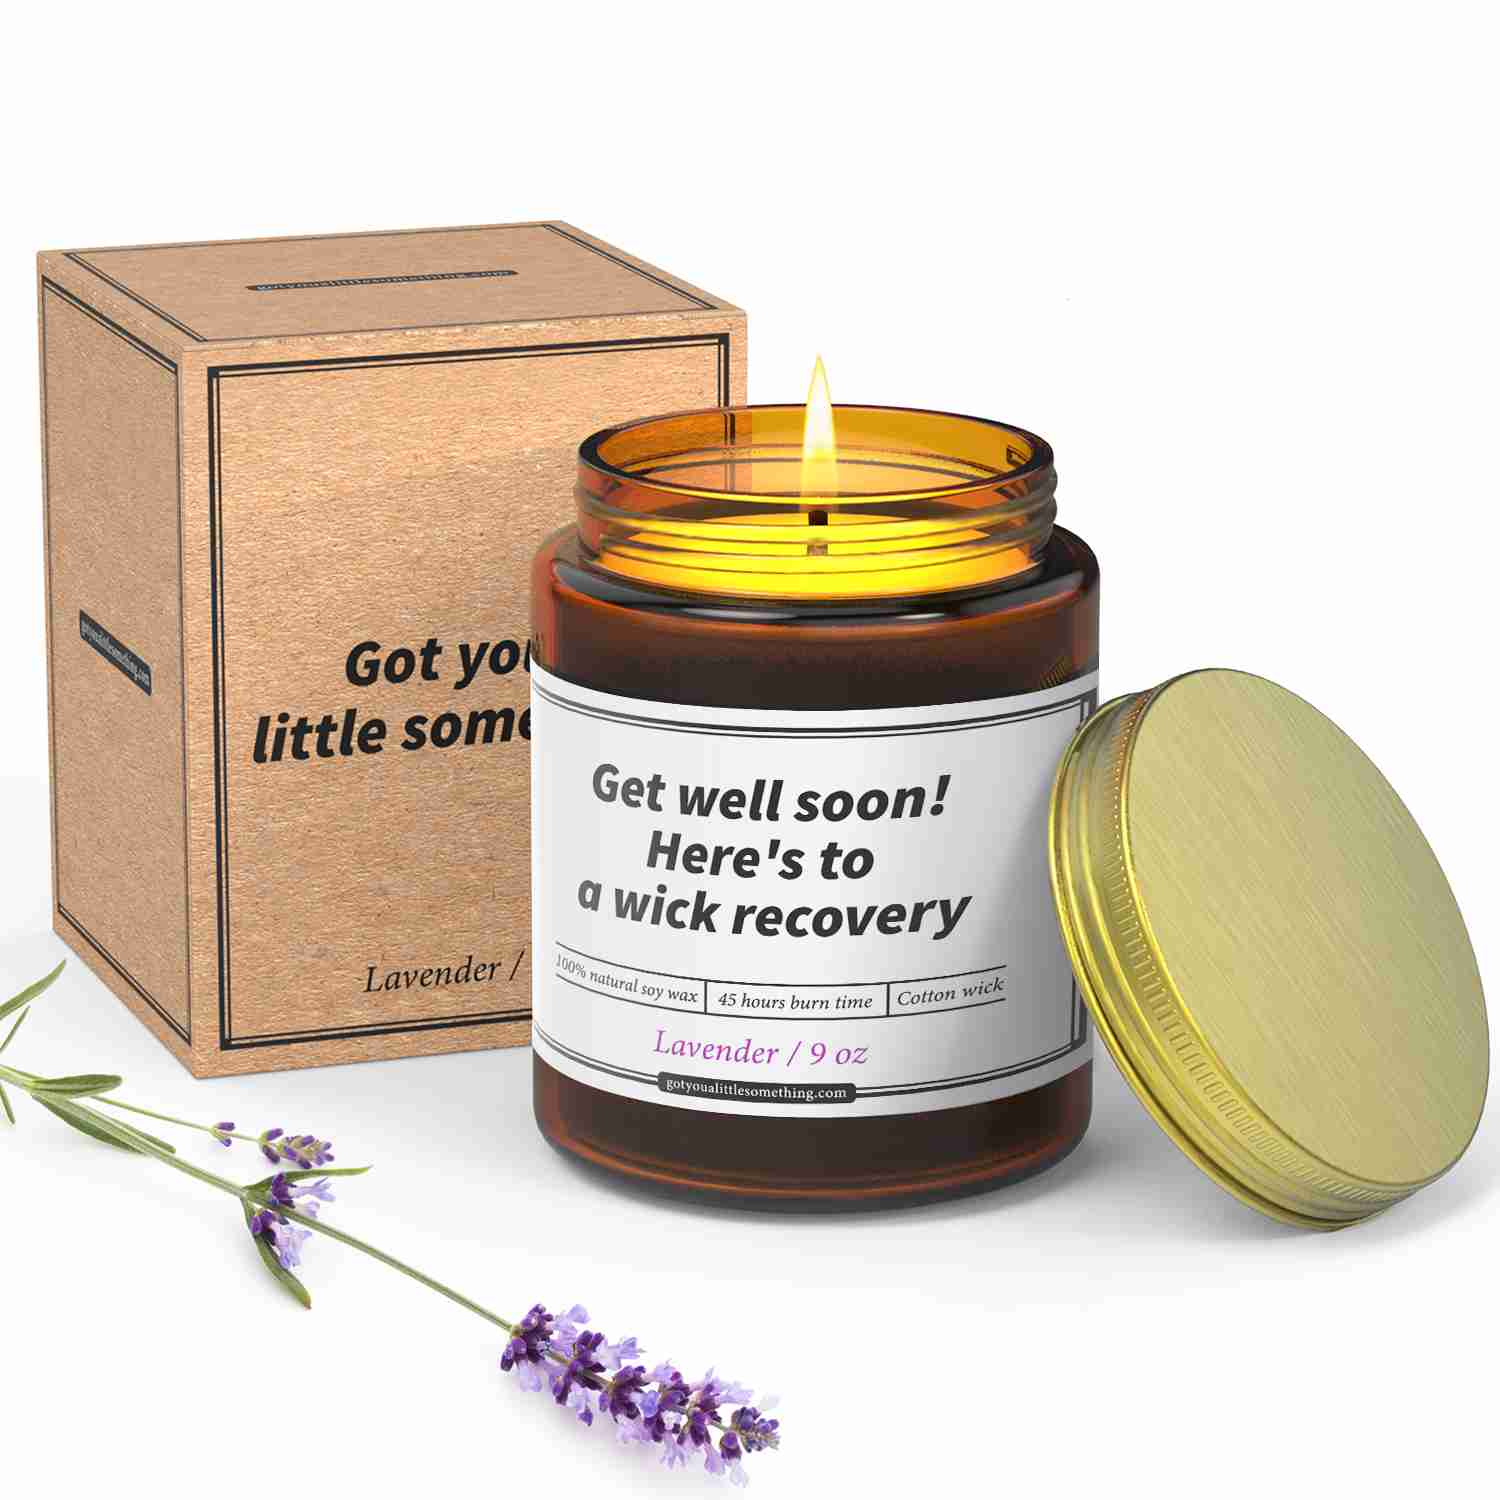 Funny-get-well-soon-candle-gift with discount code